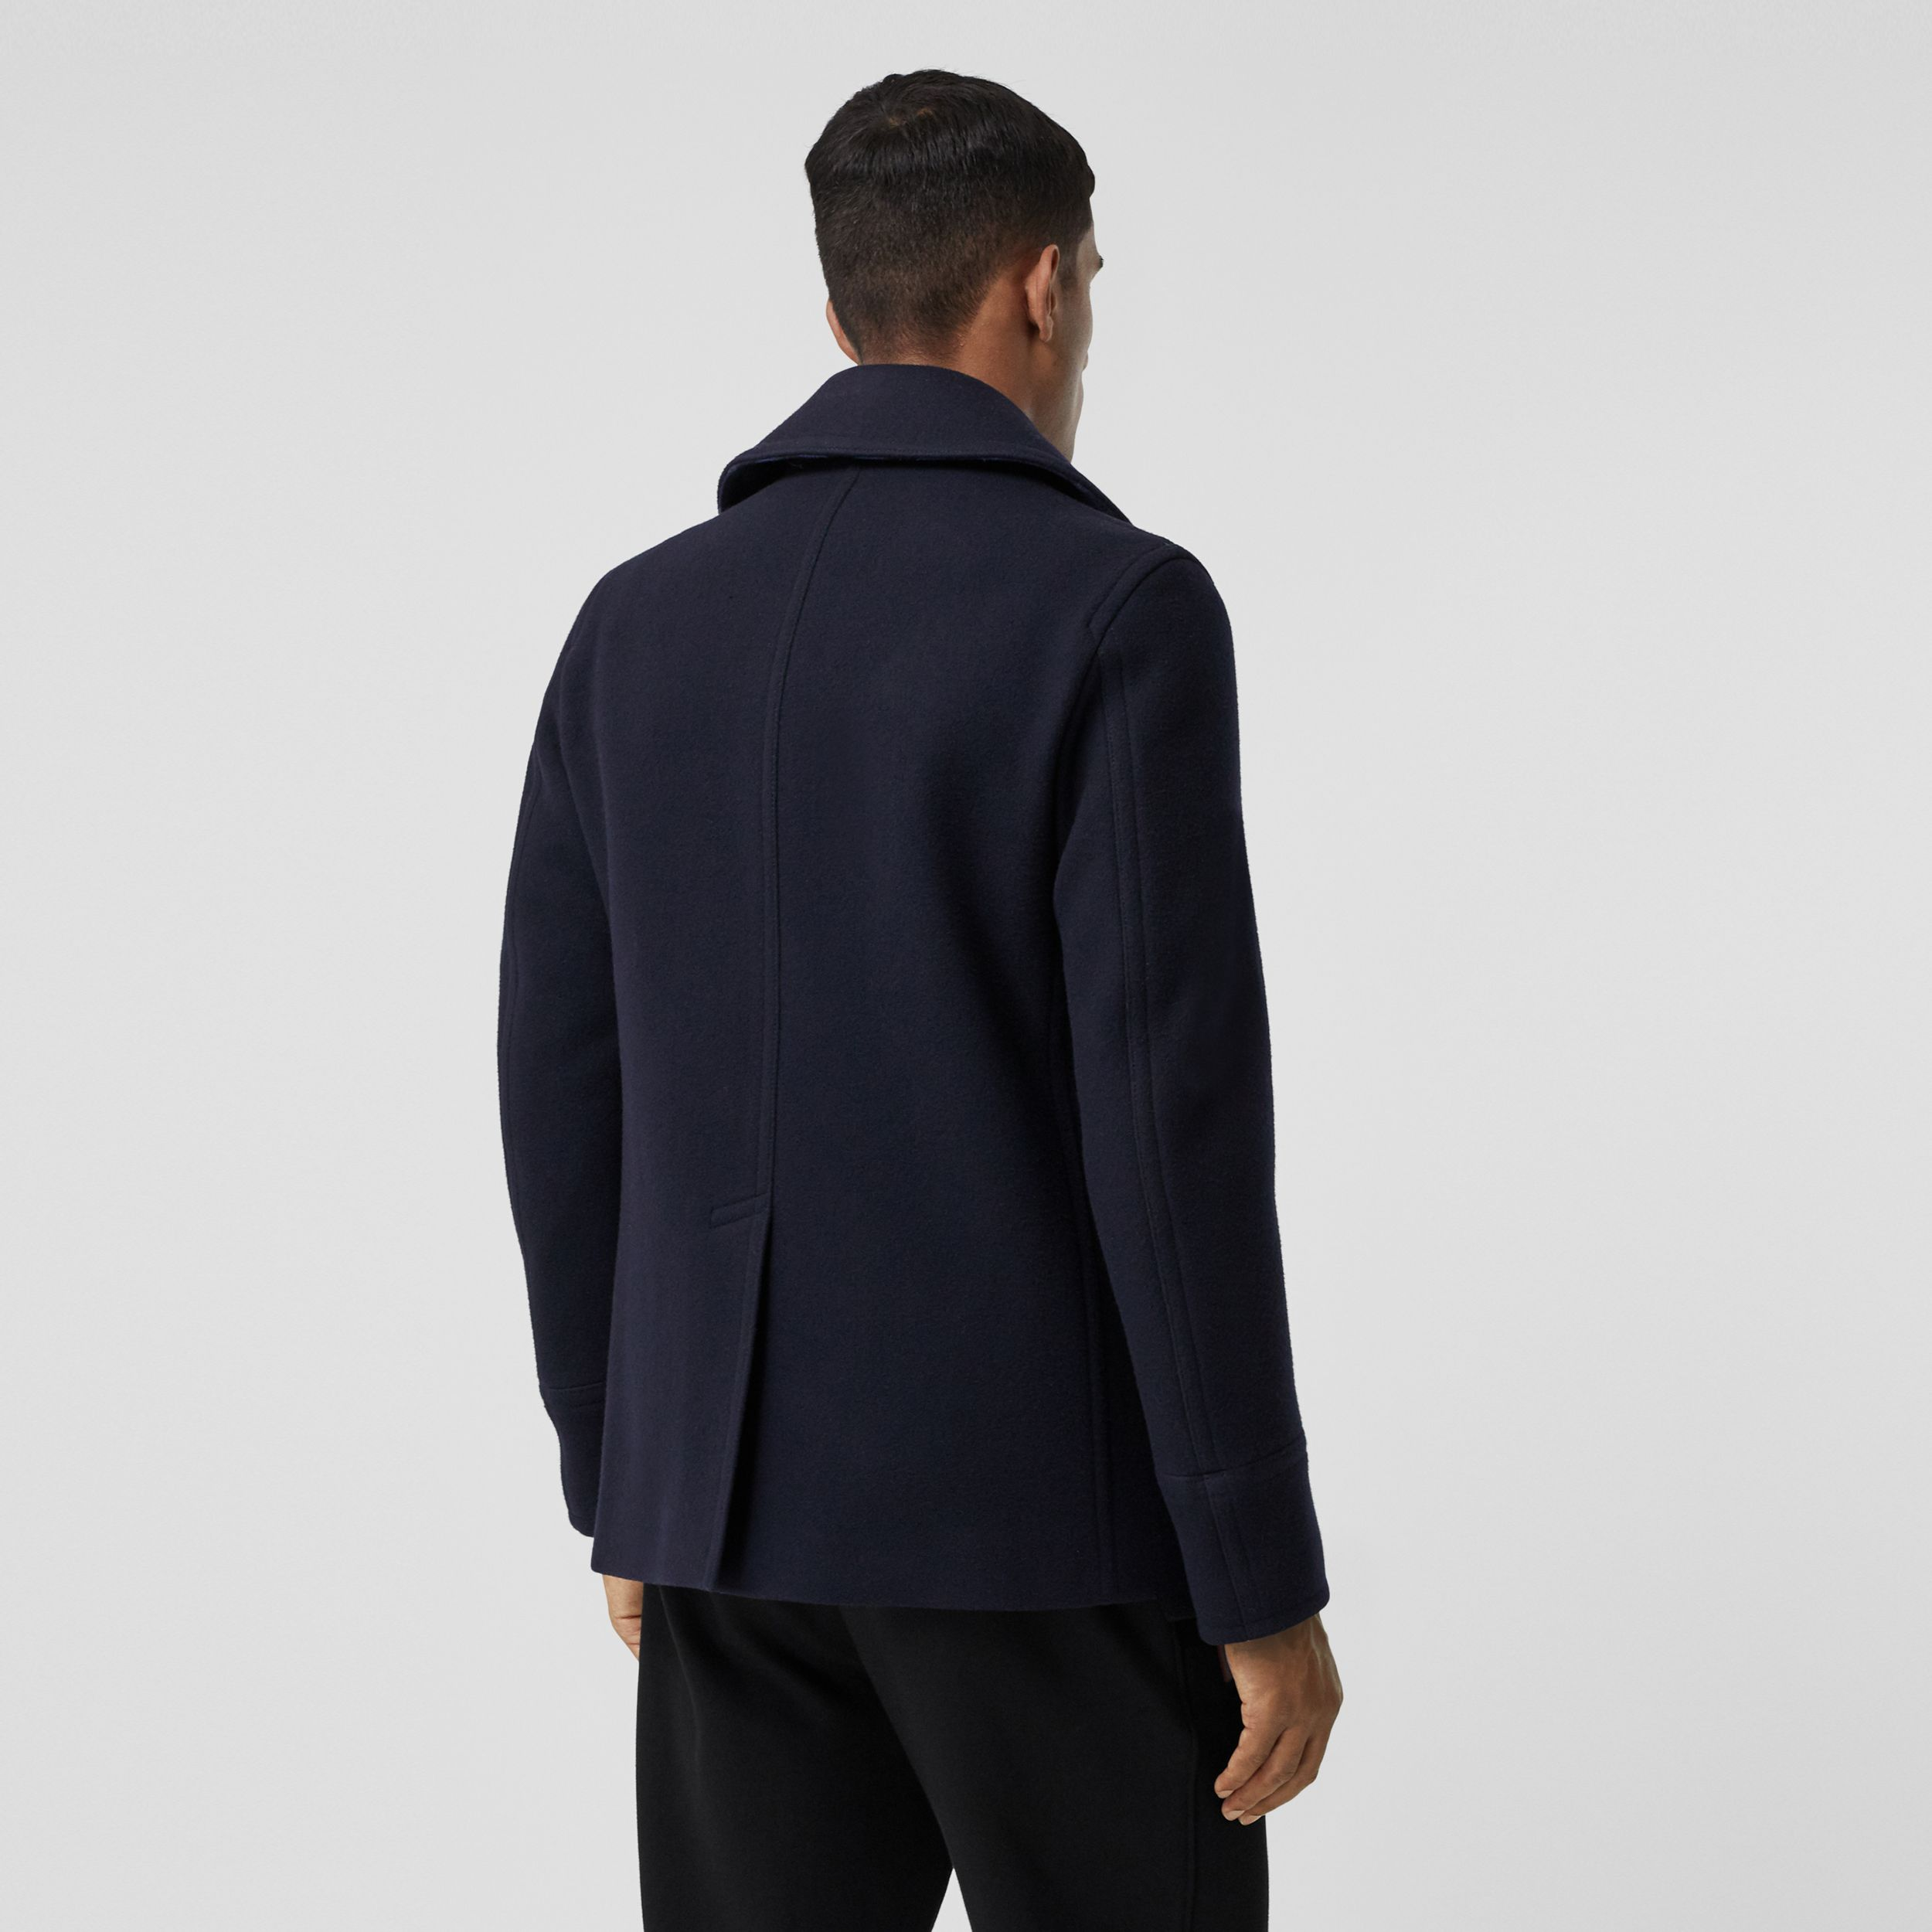 Wool Blend Pea Coat in Navy - Men | Burberry - 3